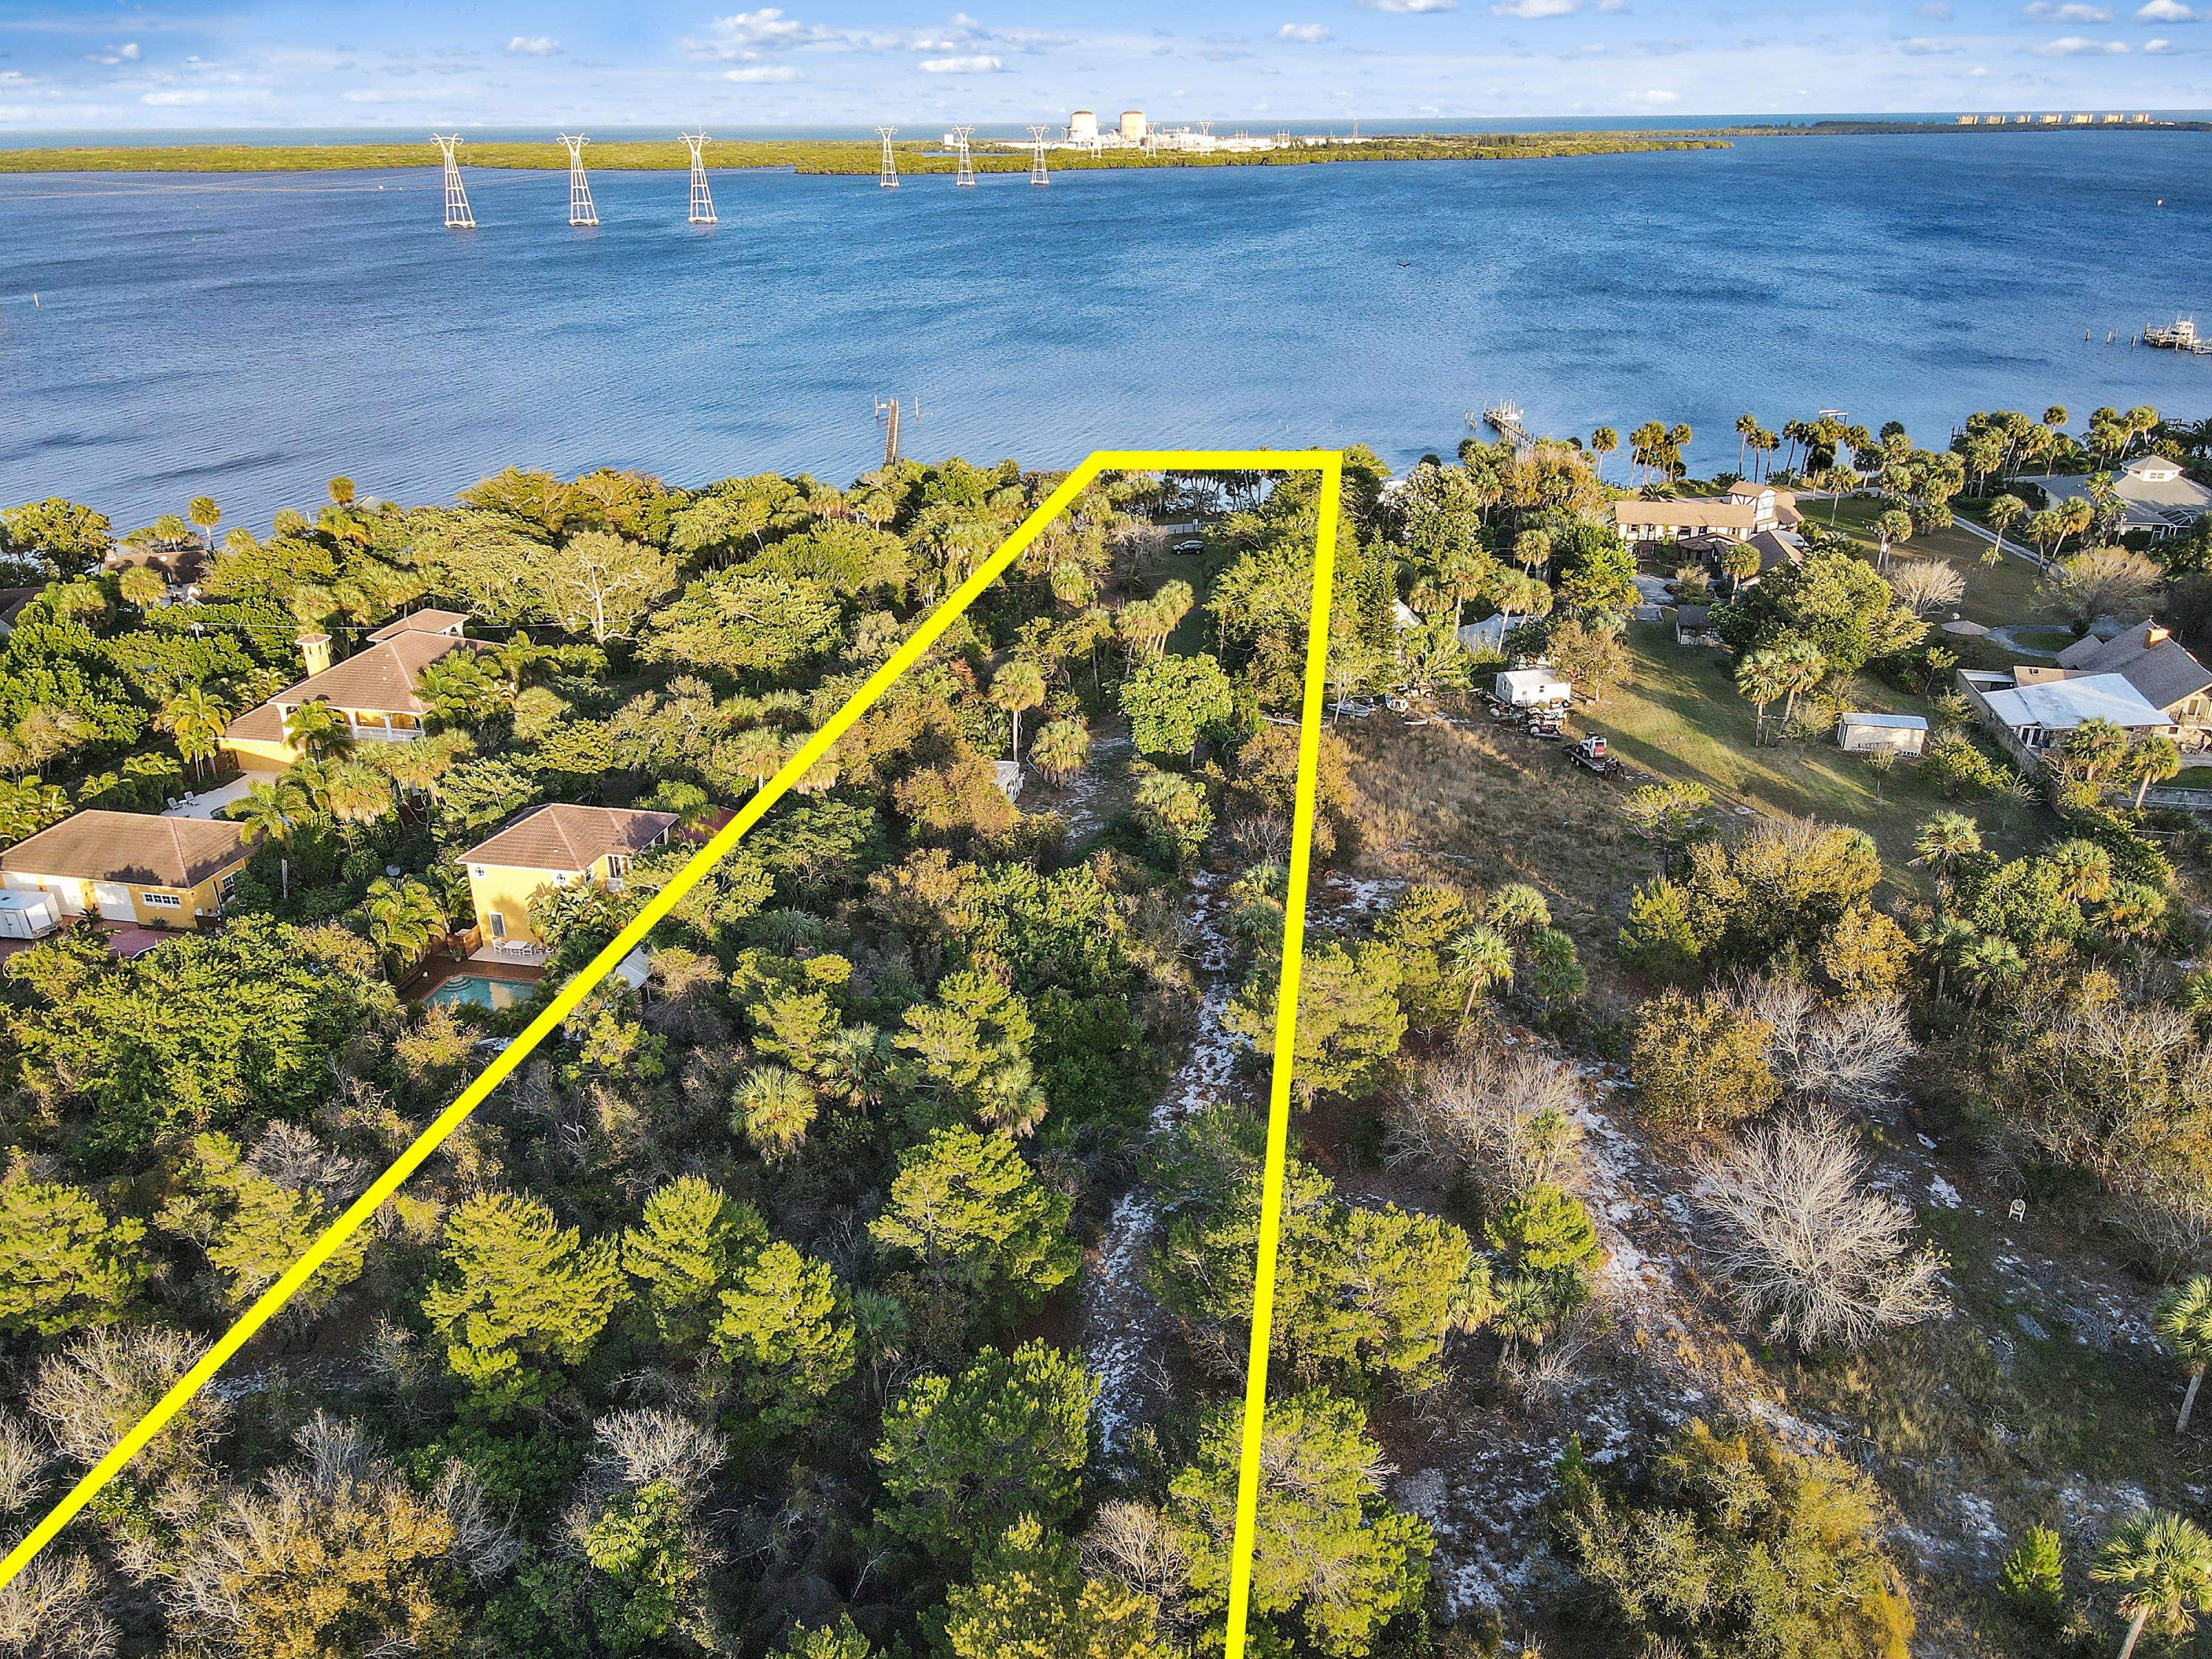 000 S Indian River S Drive, Fort Pierce, FL 34982